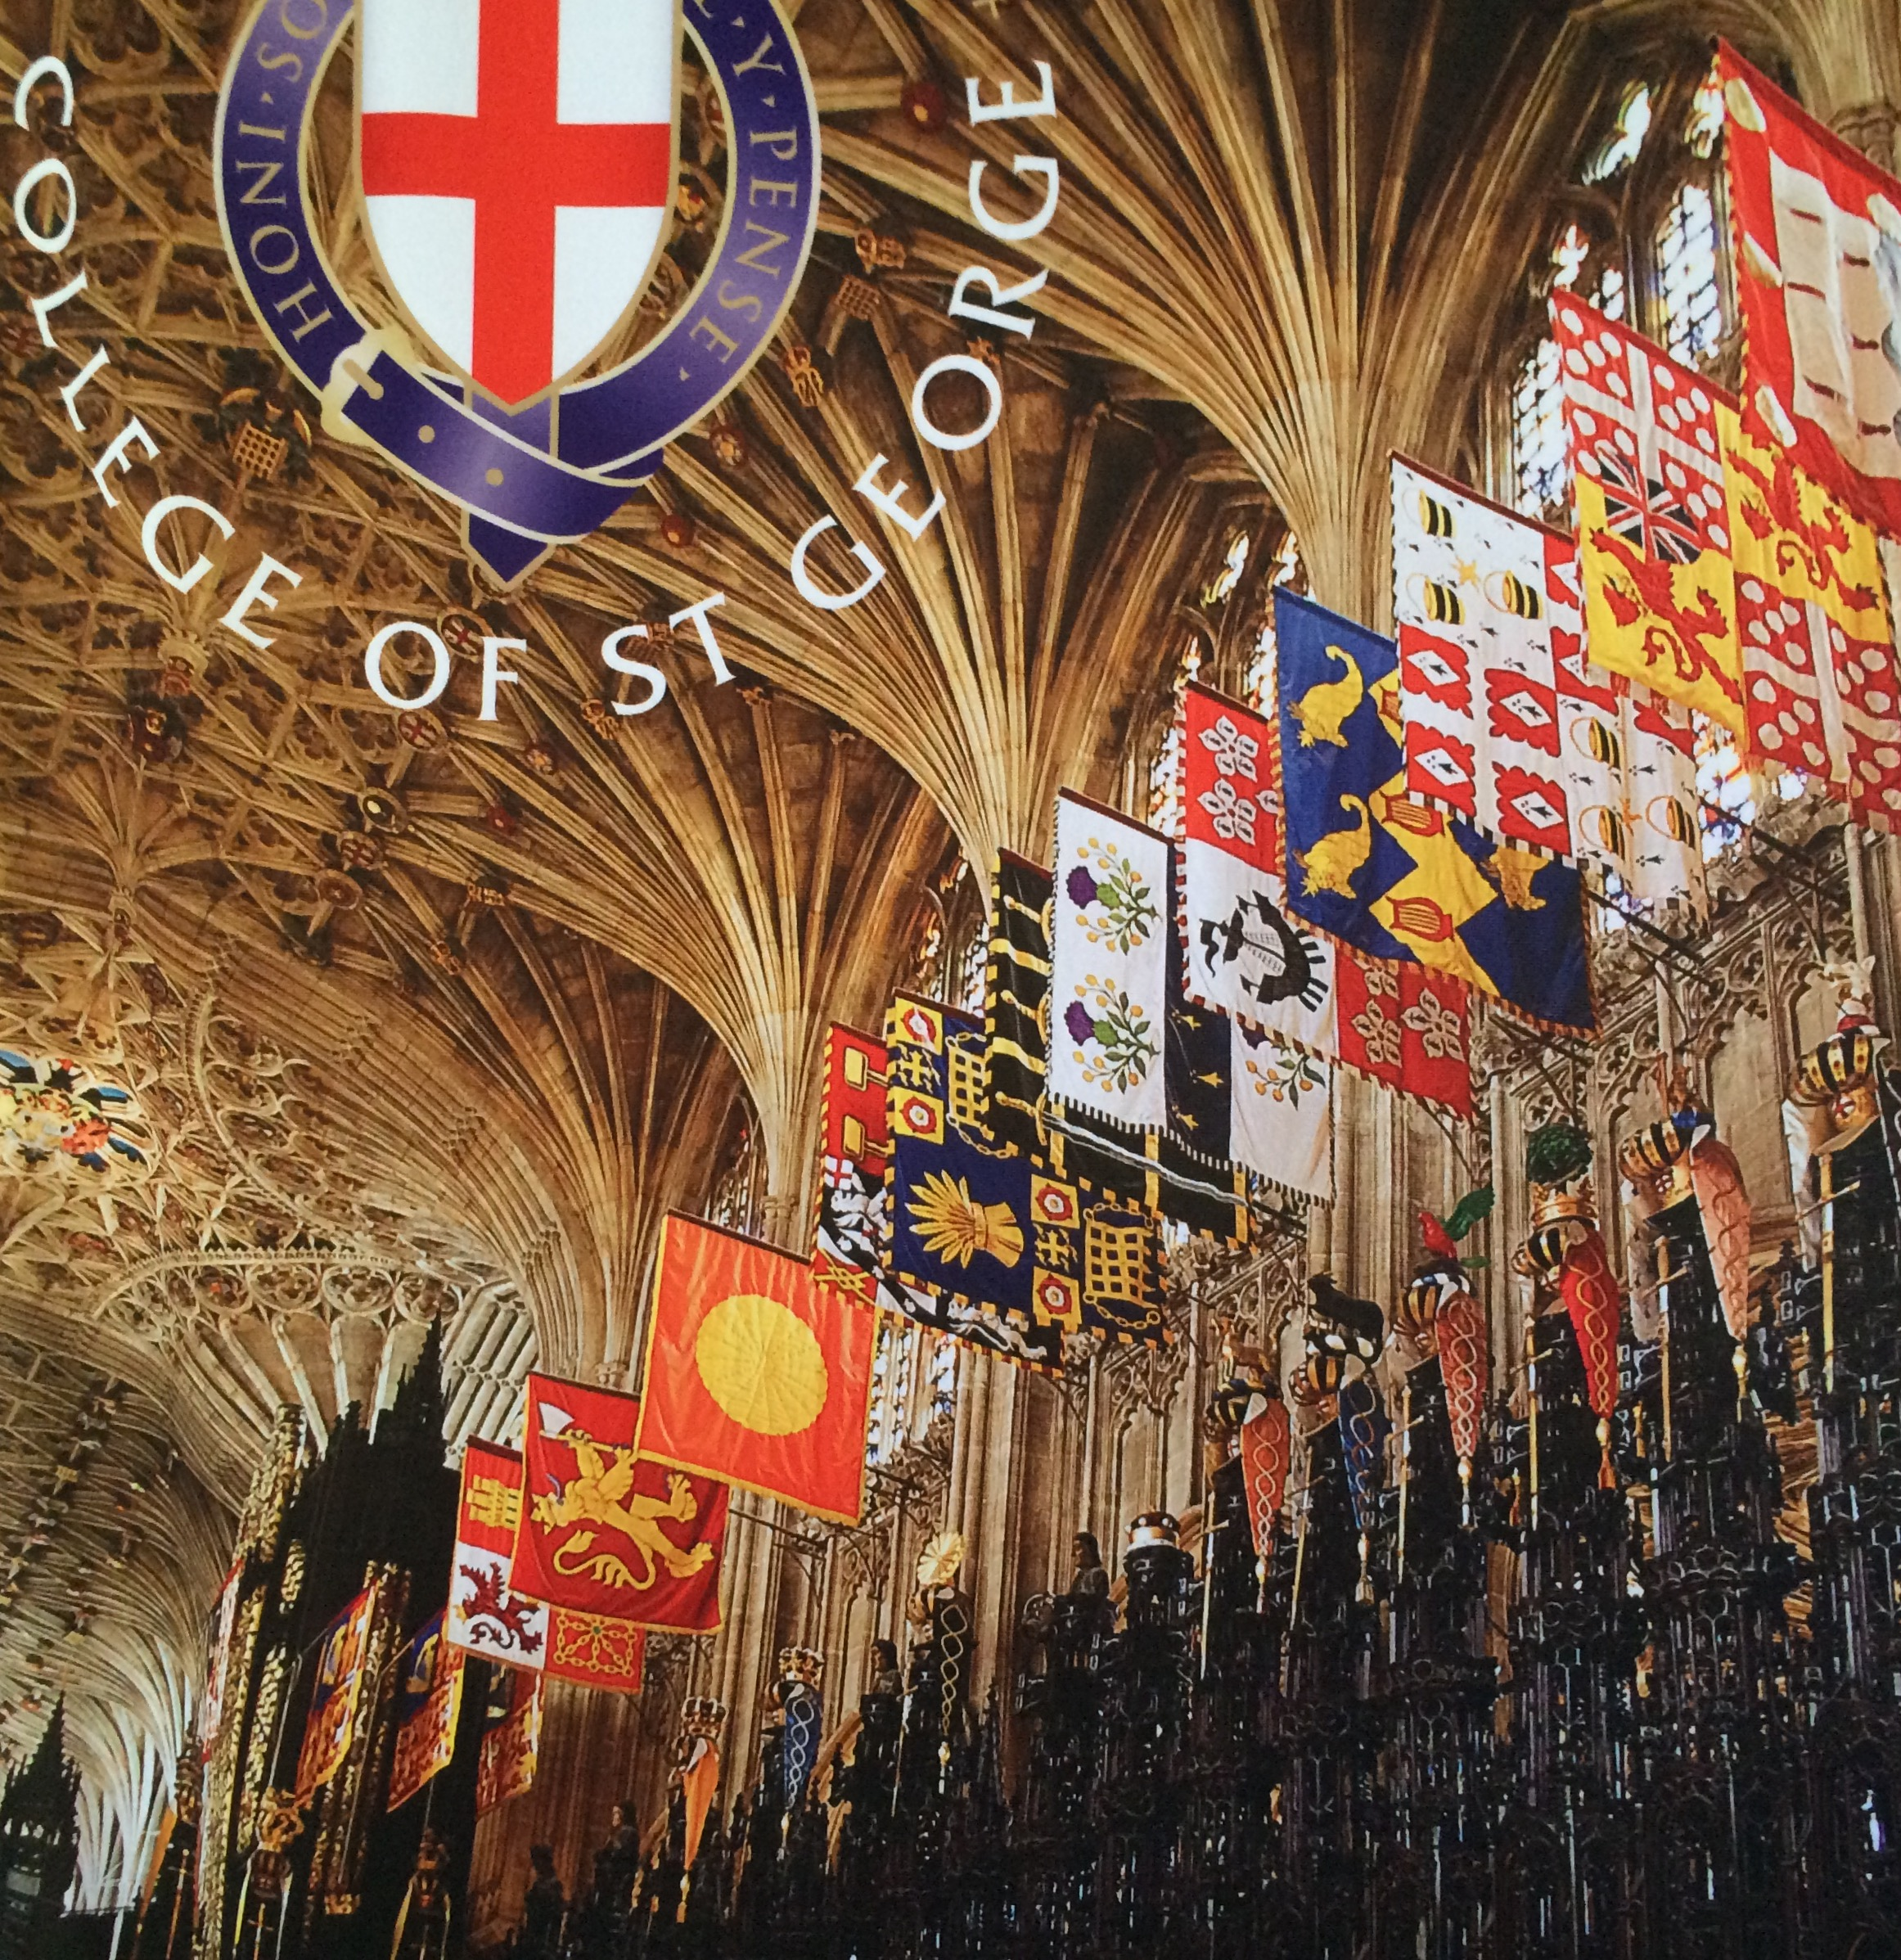 Georges Hall at Windsor Castle. We found plaques for 4 of the 5 Knights of the Garter. One is next to theEmperor Hirohito of Japan's flag